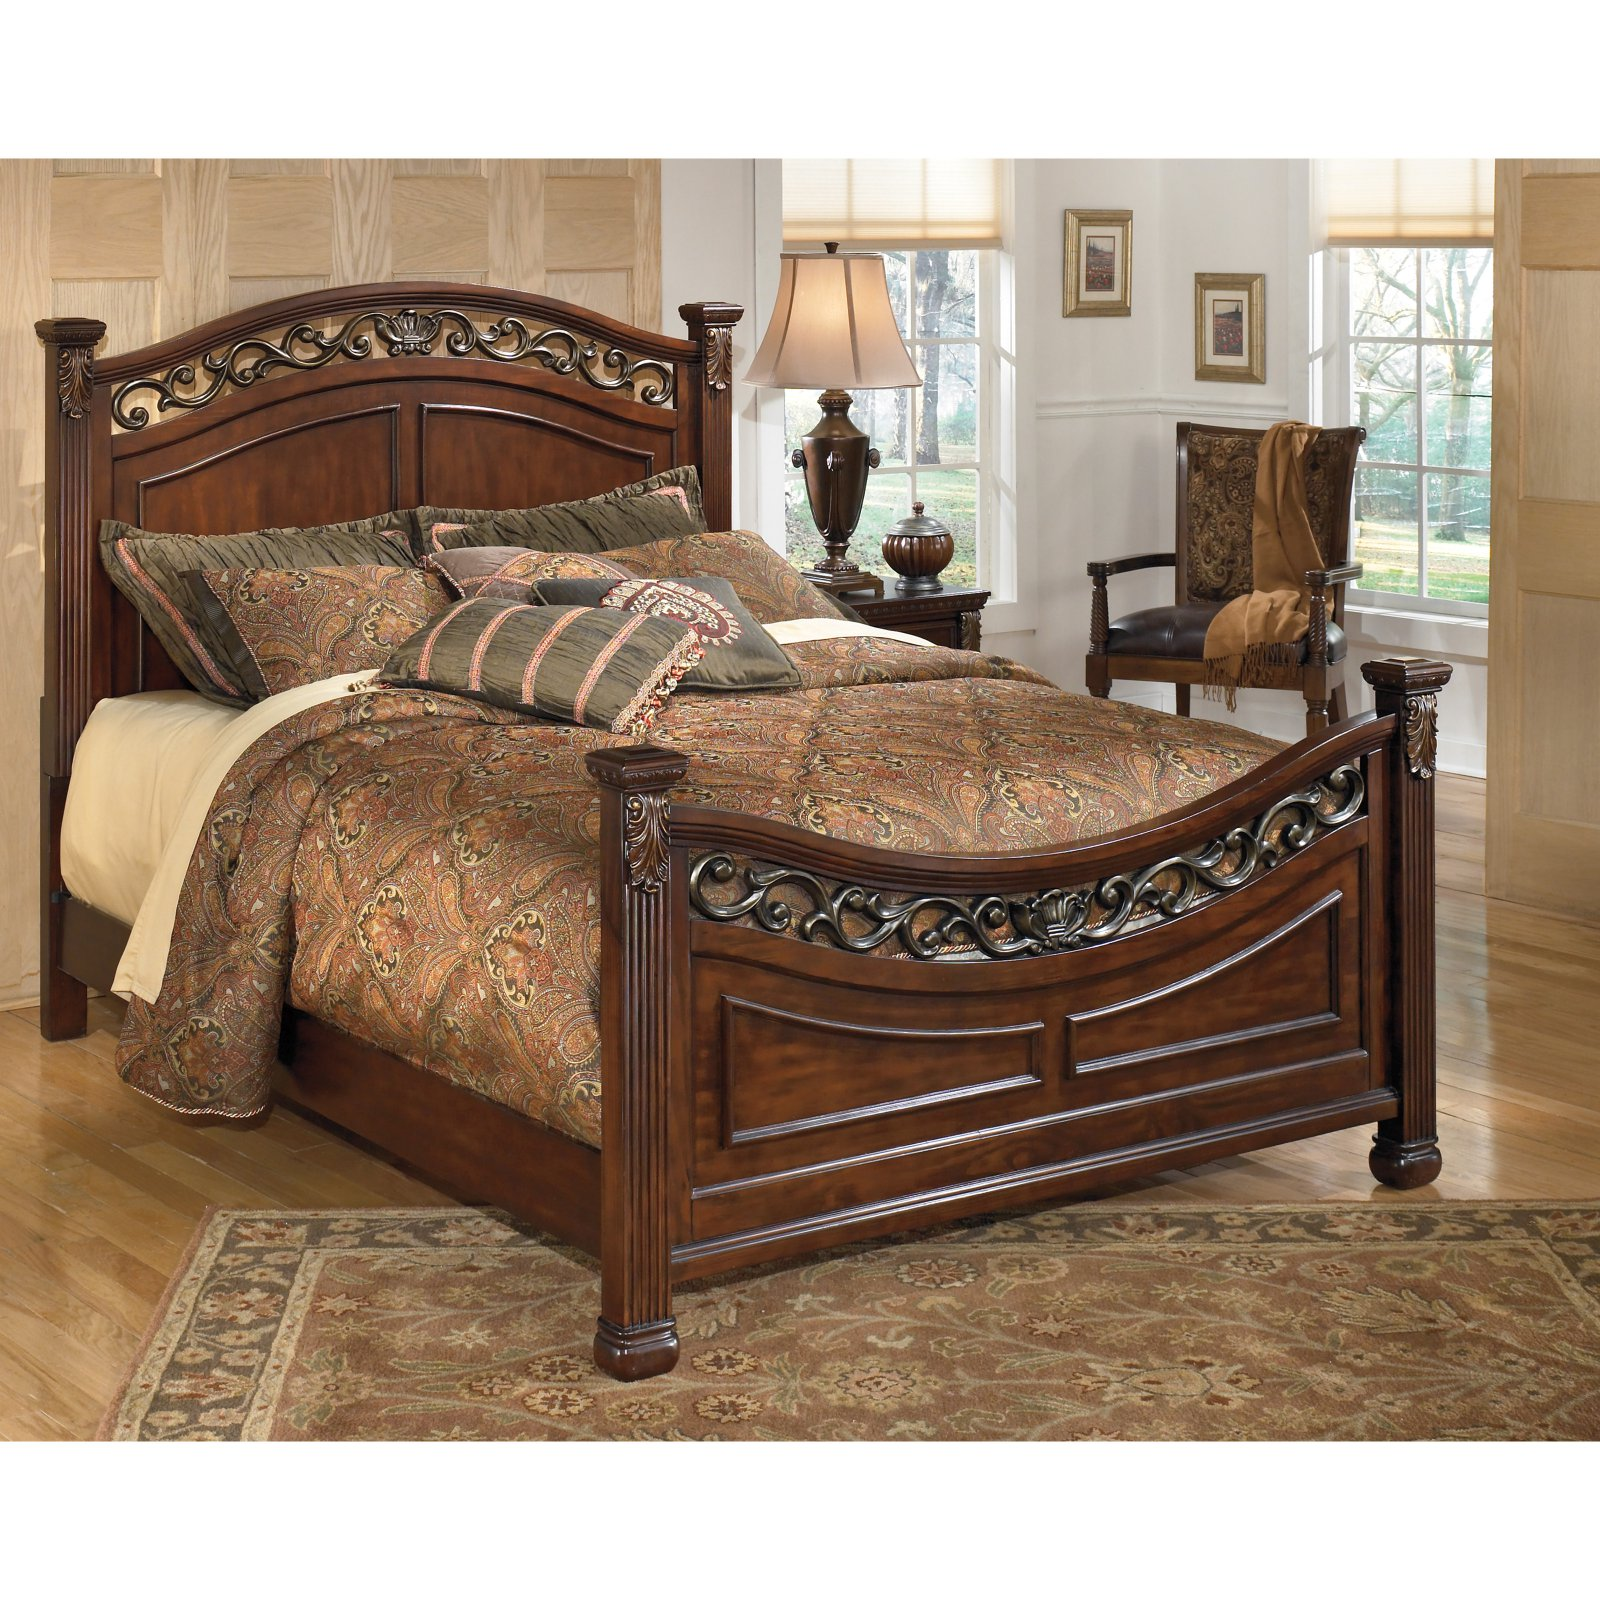 Signature Design by Ashley Leahlyn Panel Bed